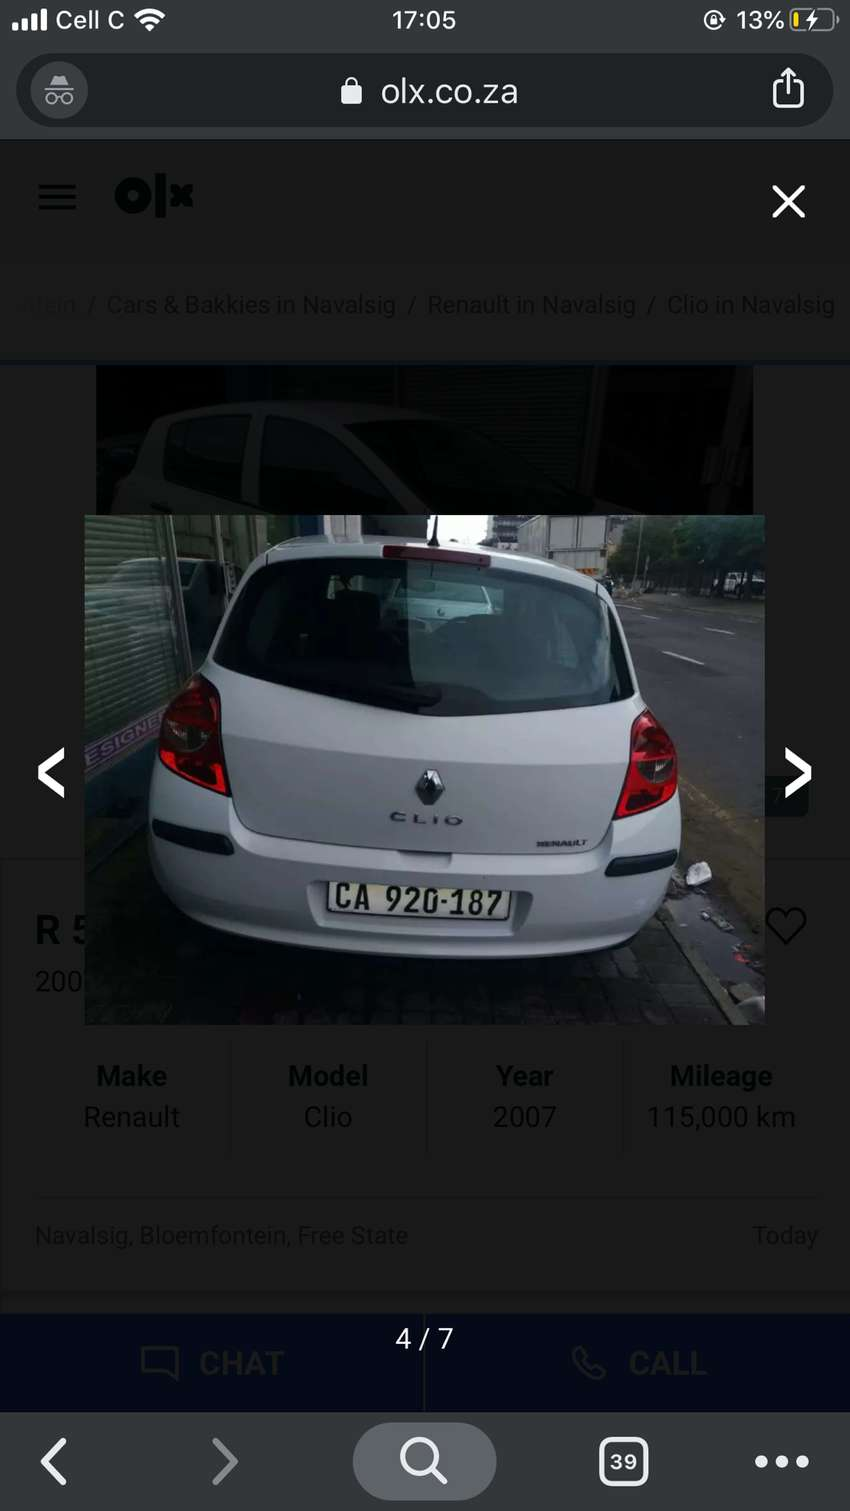 Clean Renault for sale 0